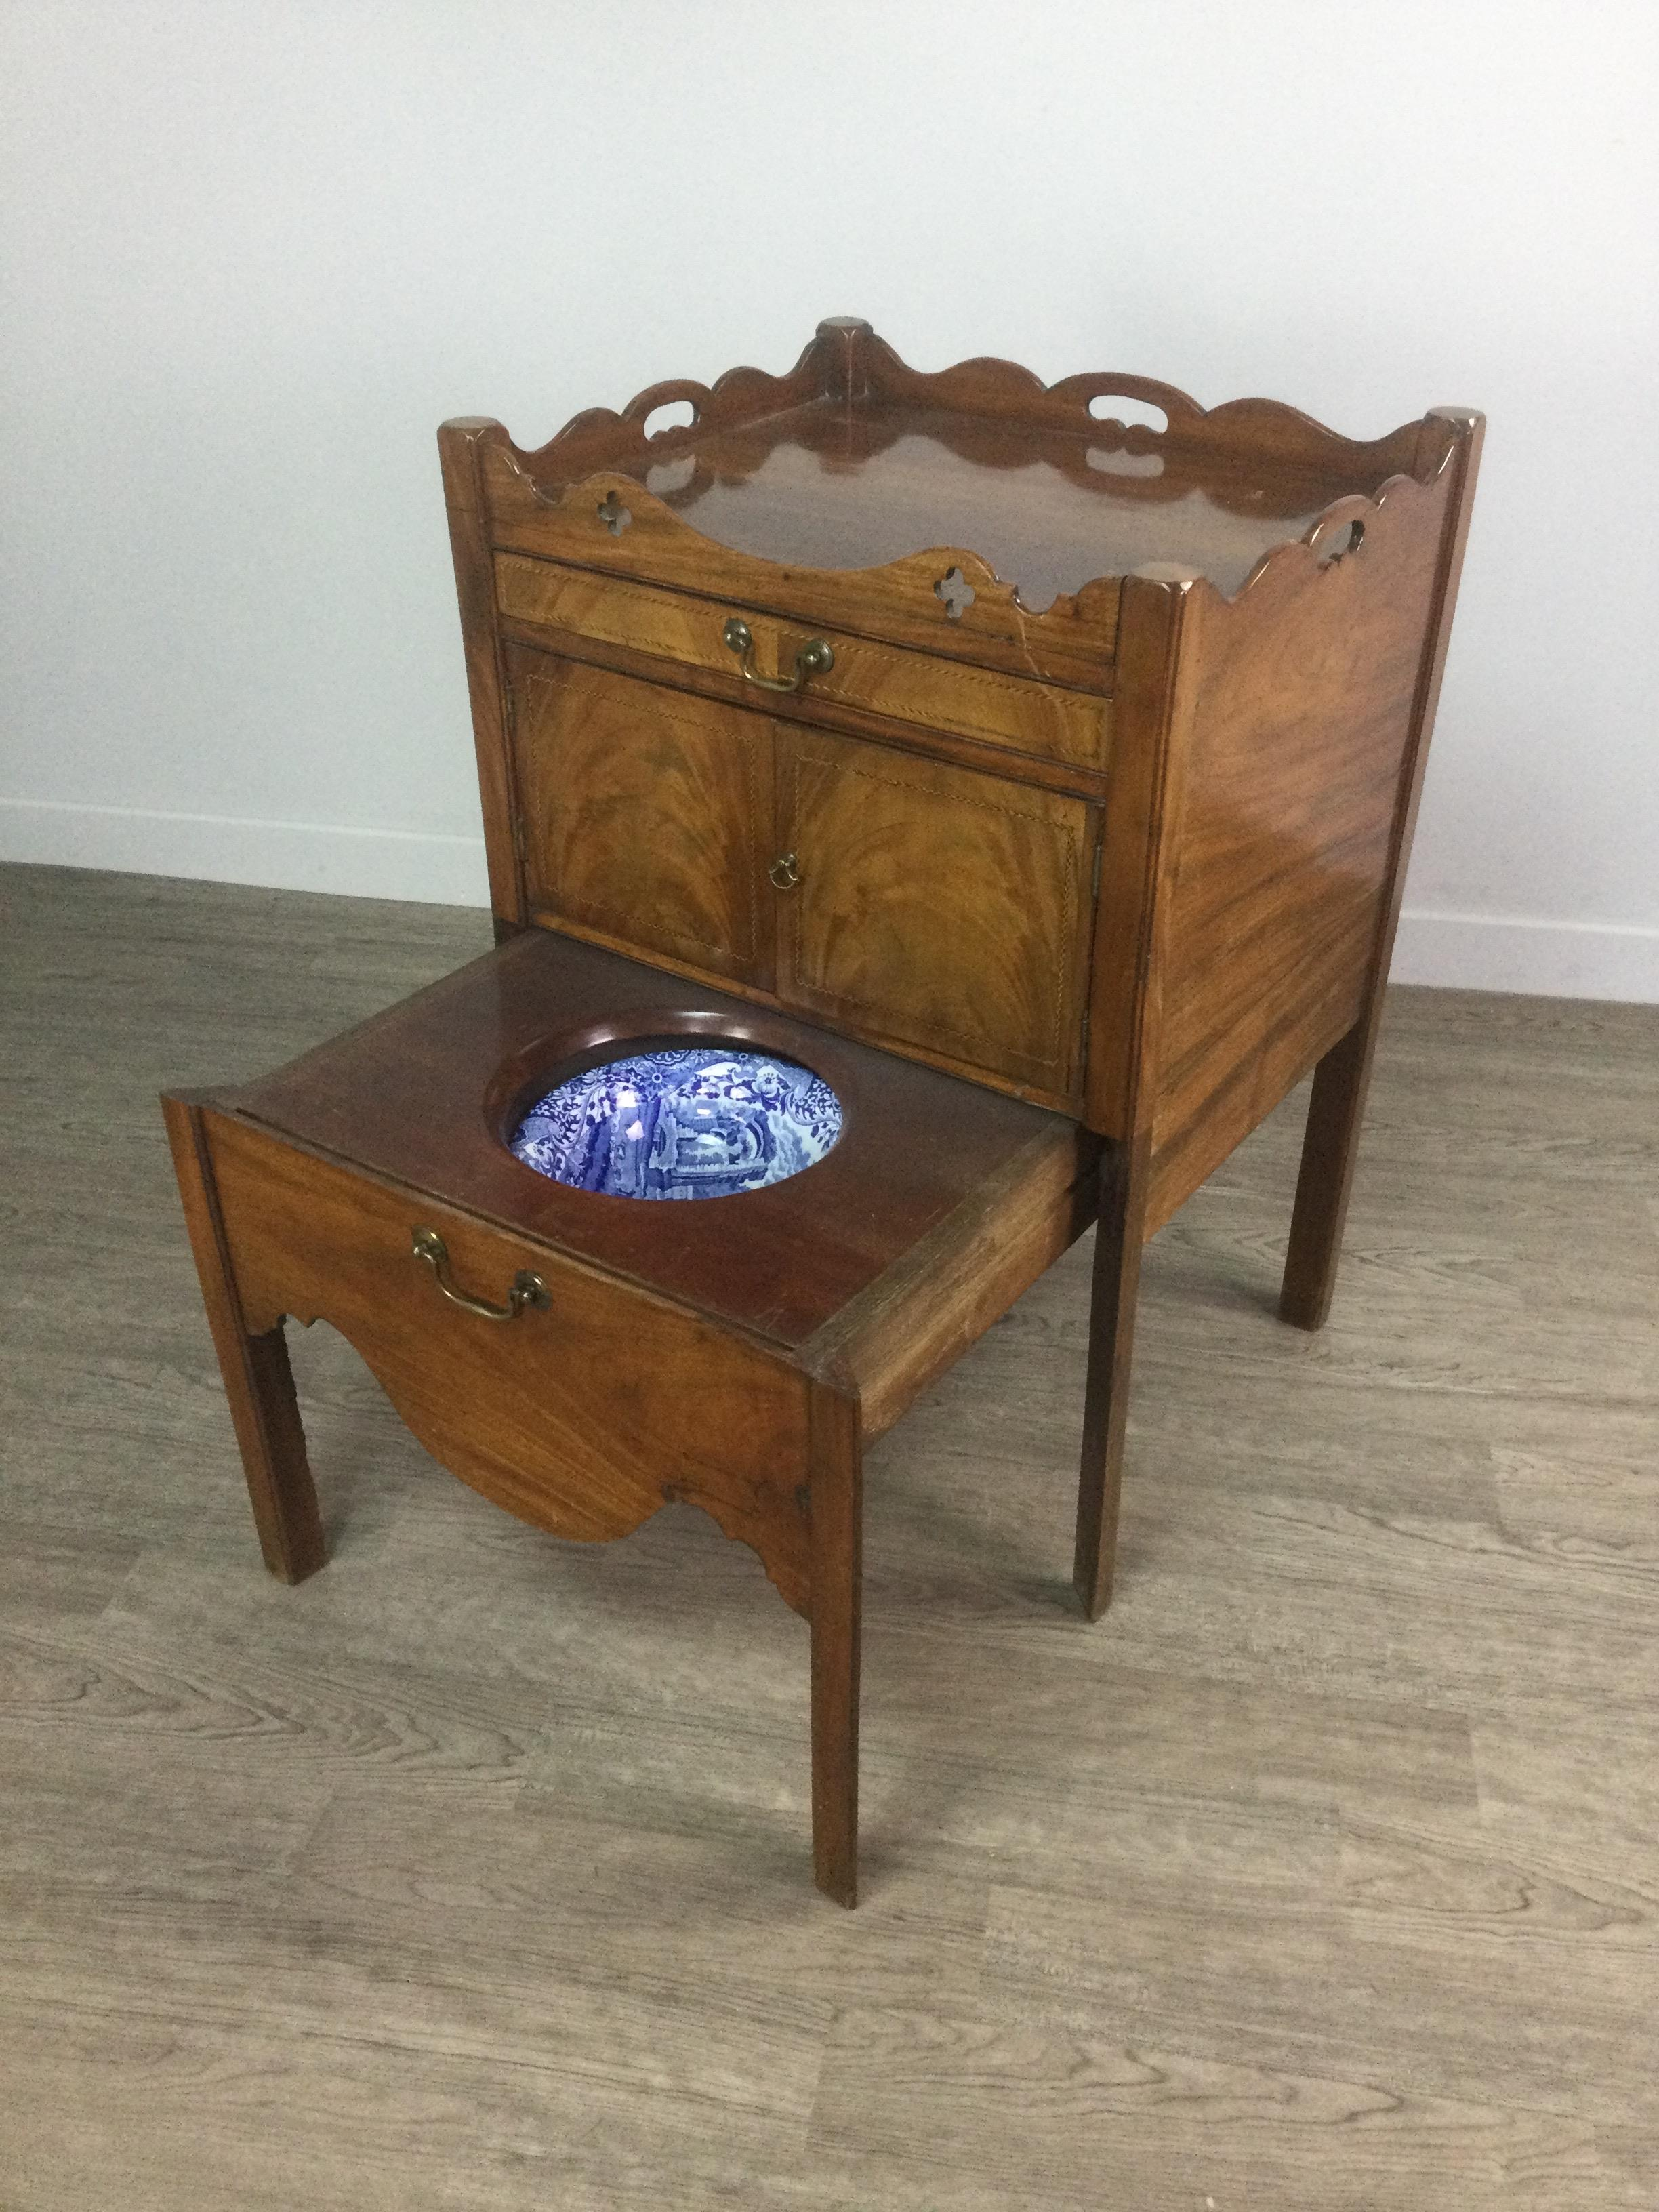 A 19TH CENTURY MAHOGANY TRAY TOP BEDSIDE COMMODE - Image 2 of 4